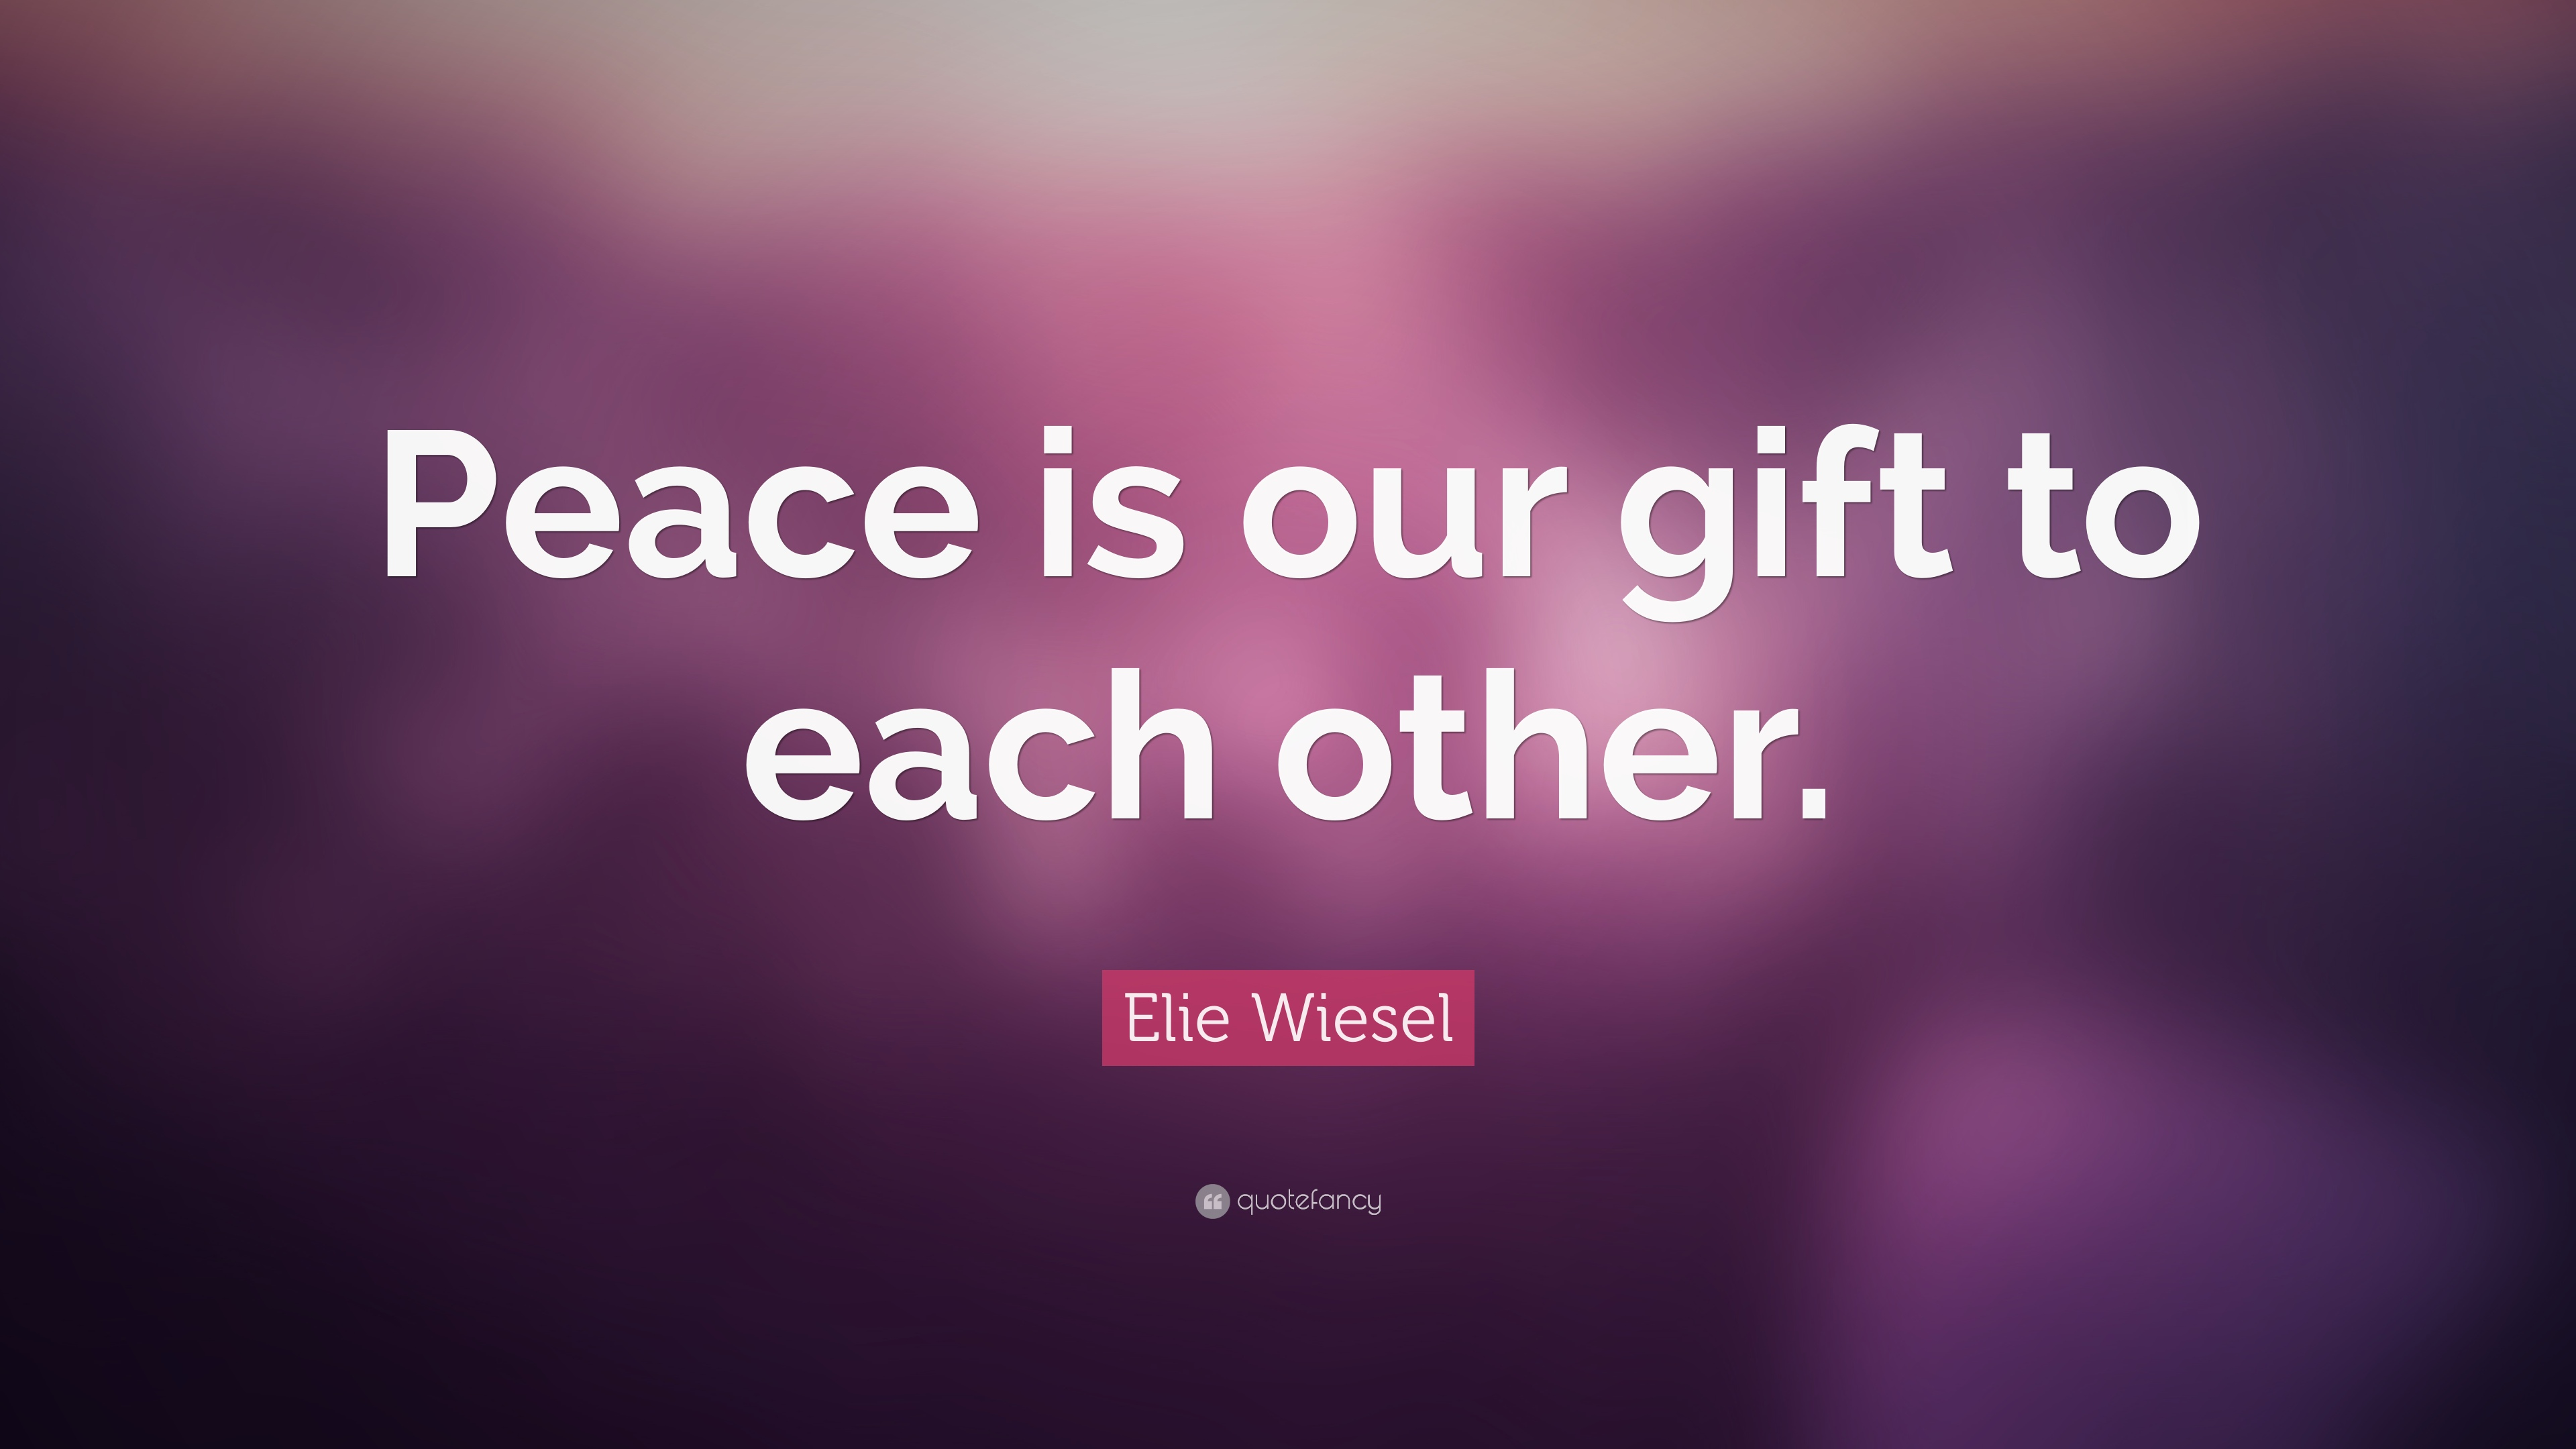 Peace Quotes (40 wallpapers) - Quotefancy